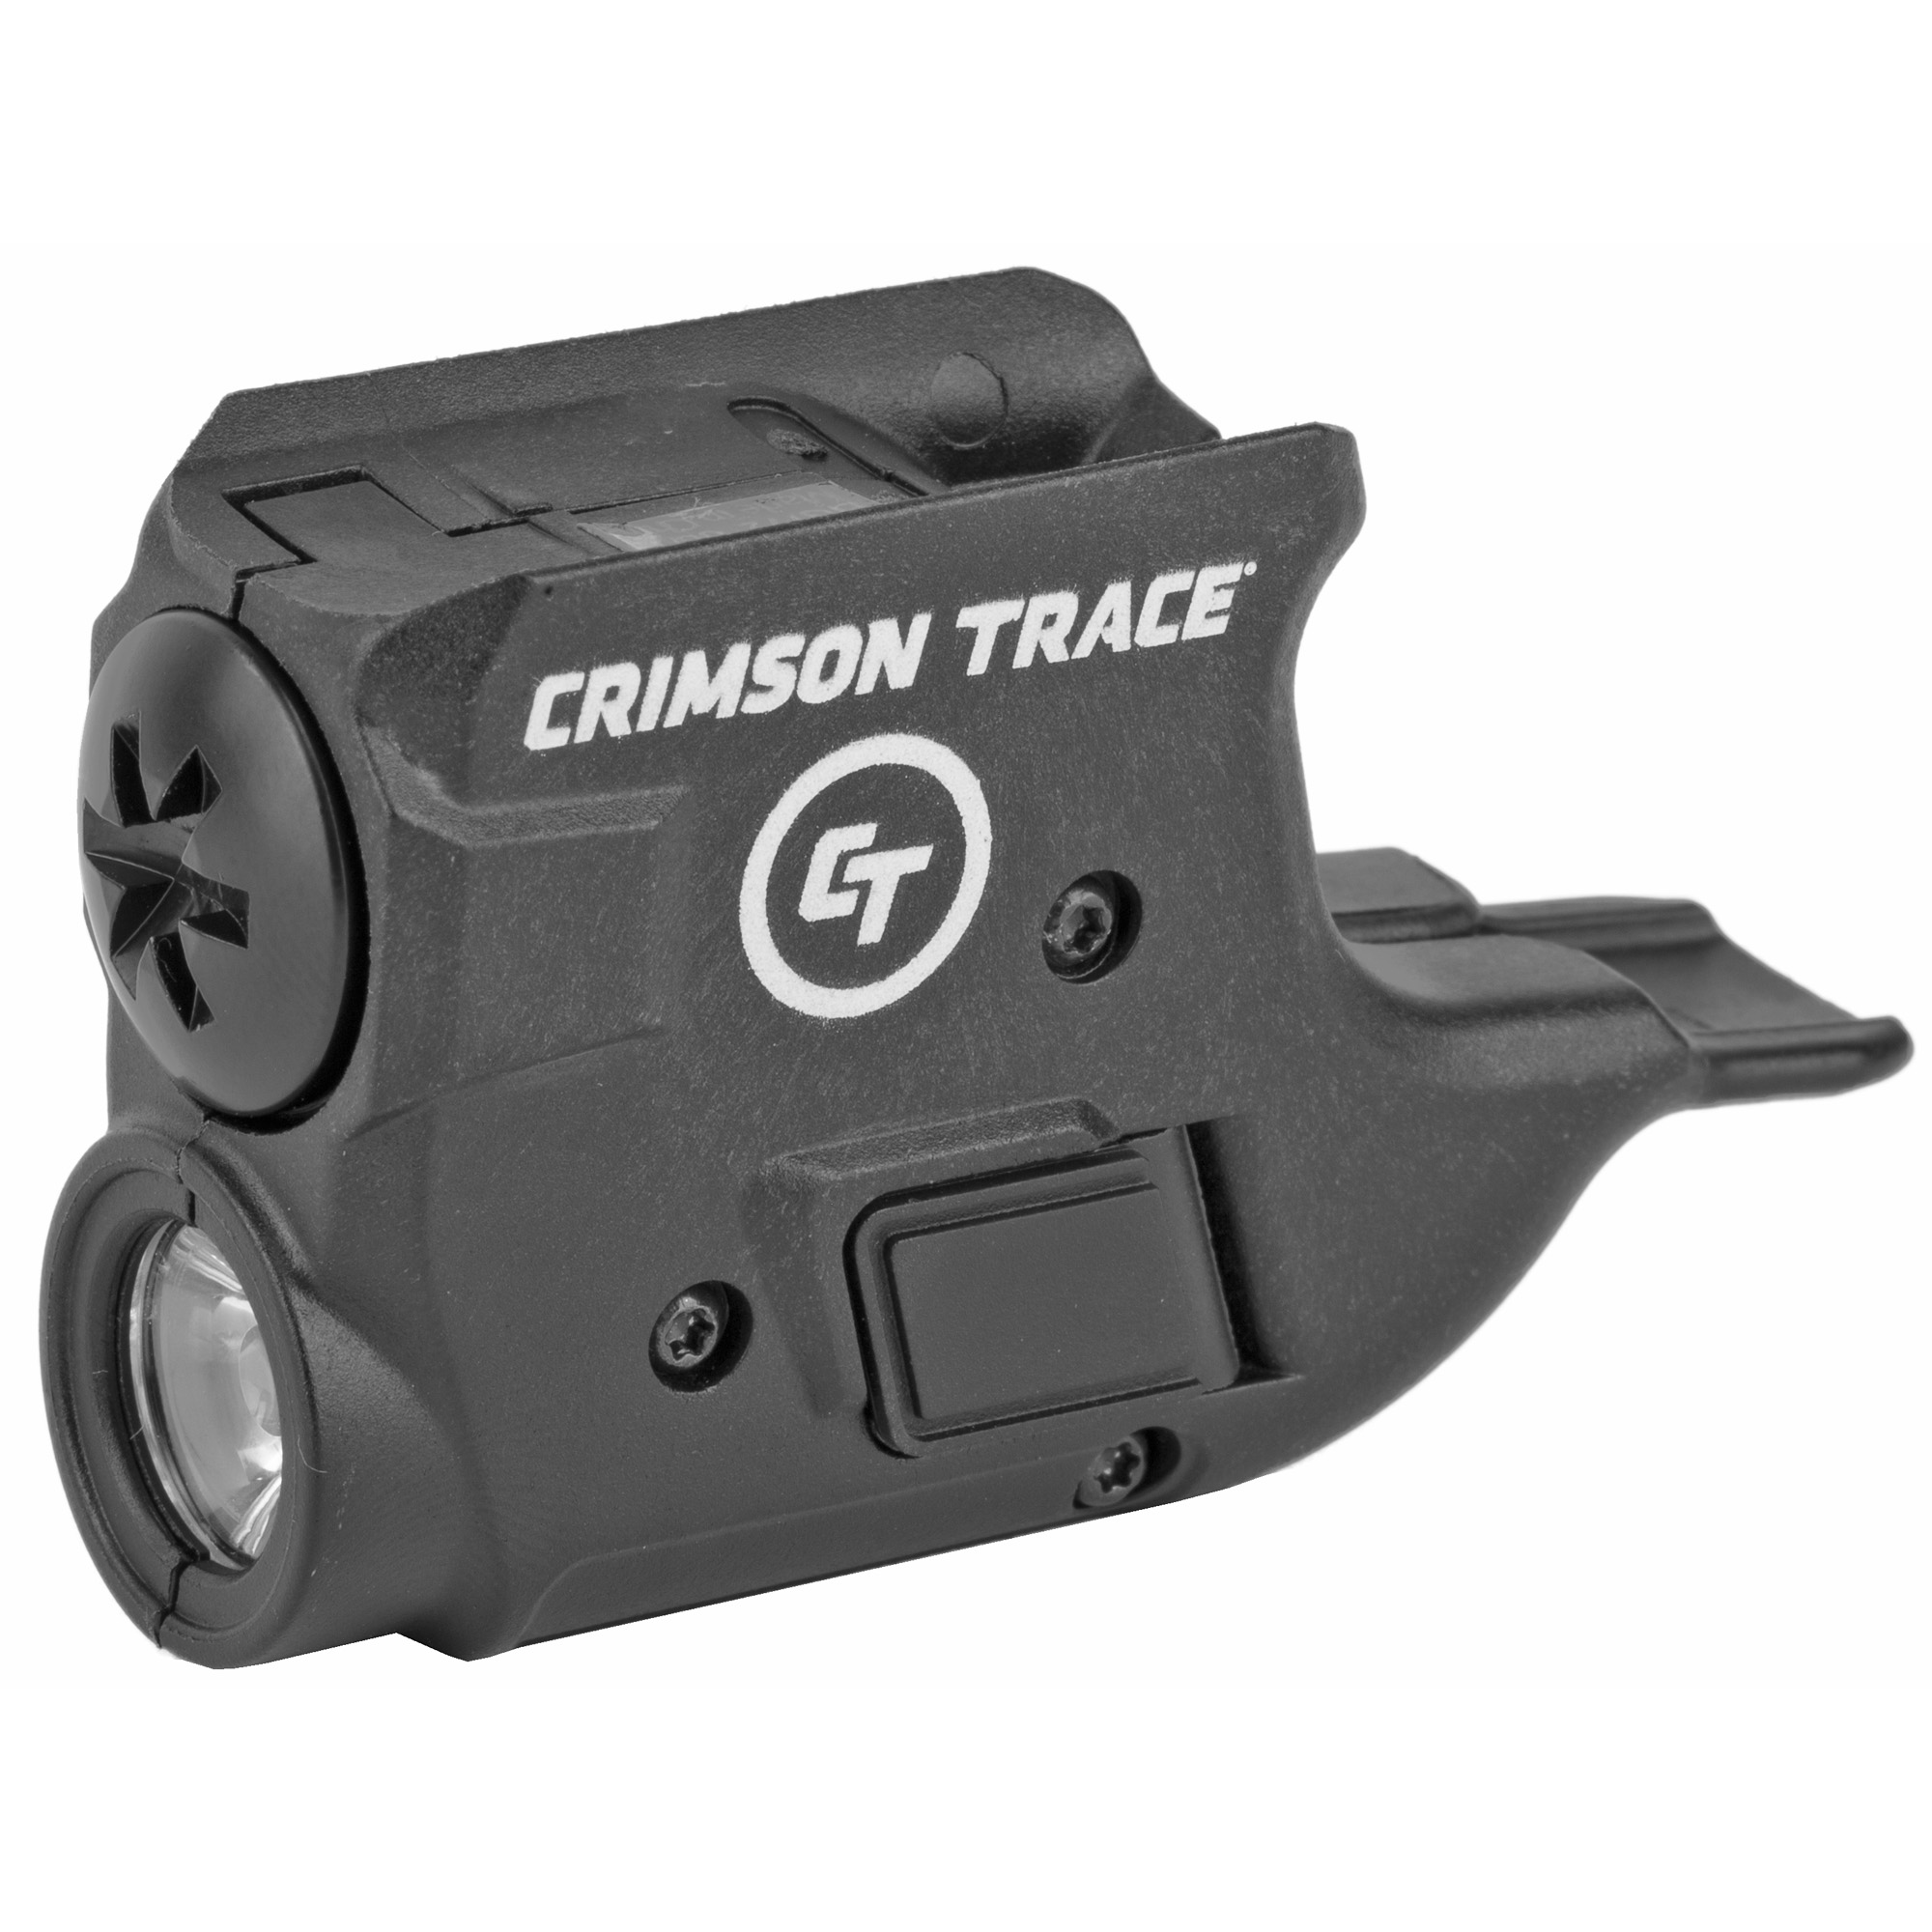 Crimson Trace Lightguard 110 Lumen Trigger Guard Mounted Light for Sig Sauer P365